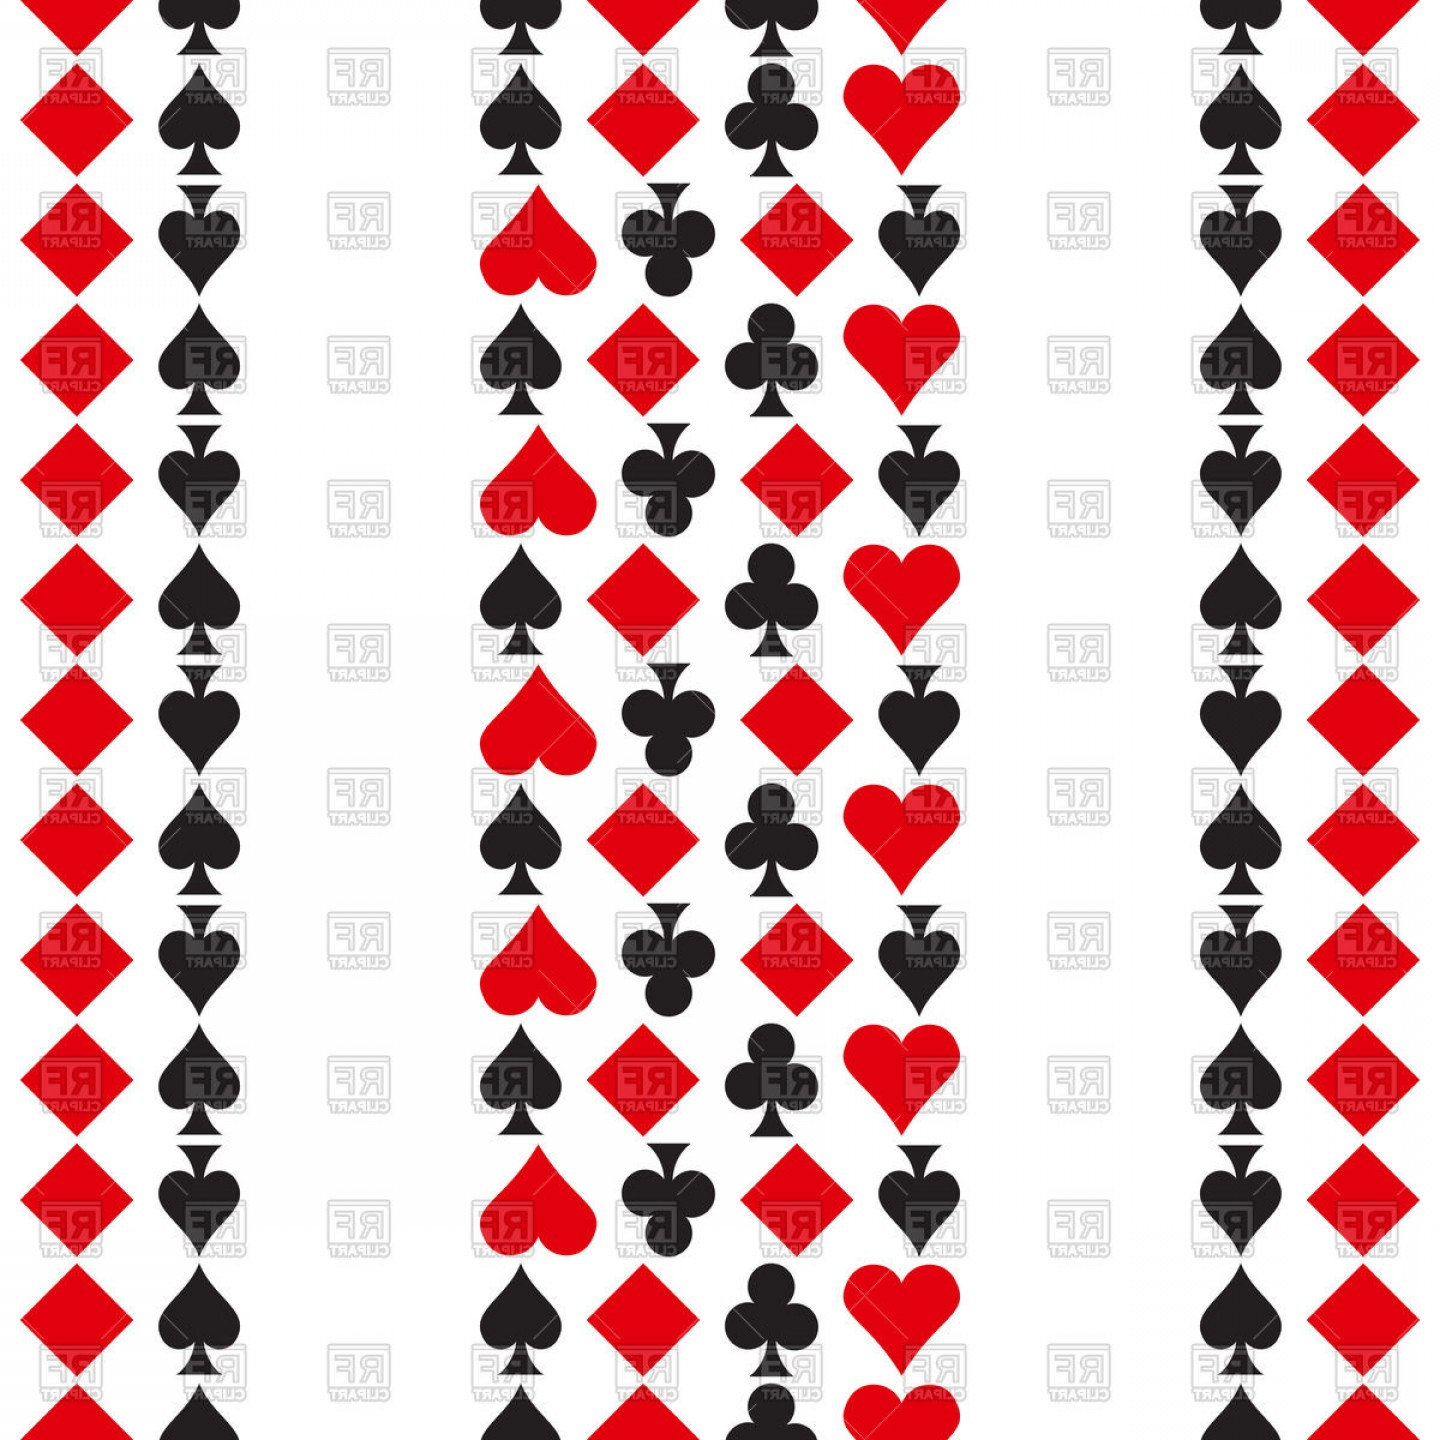 Playing Card Design Vector Illustration: Pattern With Playing Cards Symbols Vector Clipart